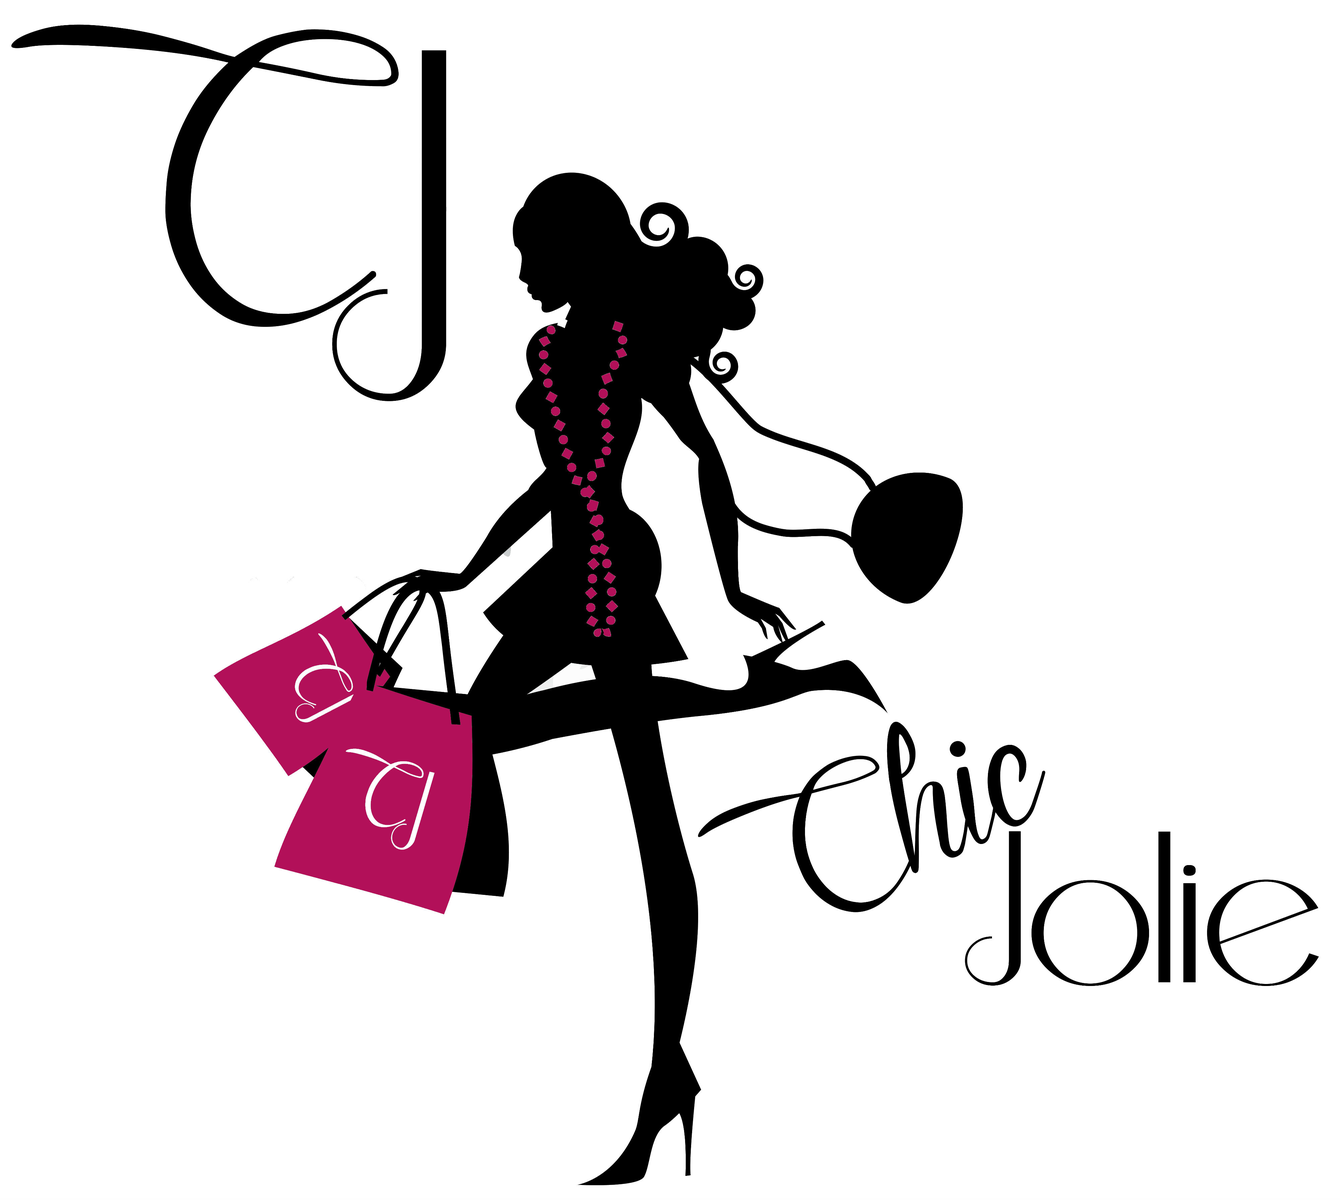 Chic Jolie Boutique